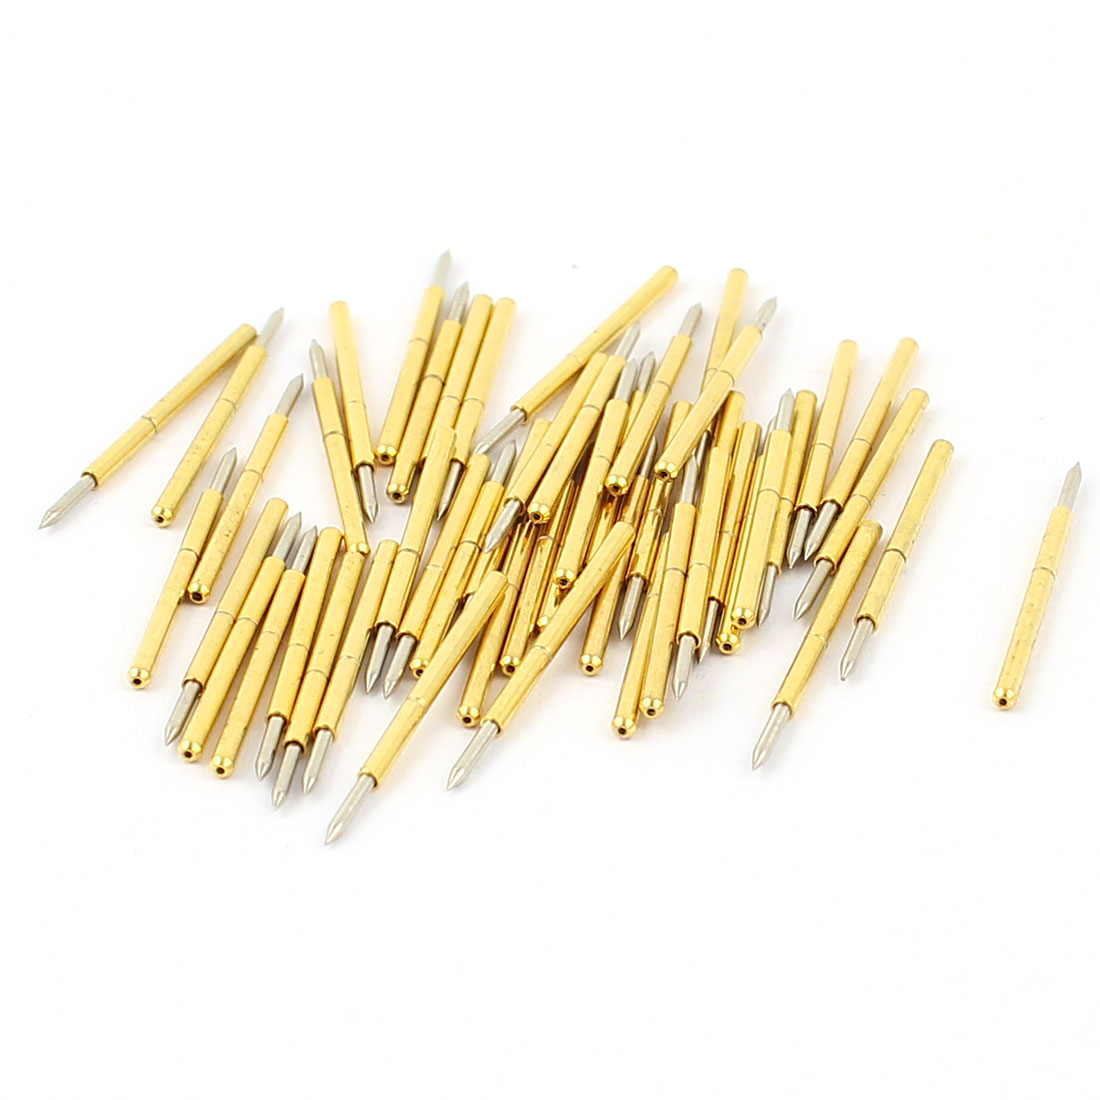 50 Pcs P75-B1 0.74mm Spear Tip Spring Testing Probes Pin 16mm Length